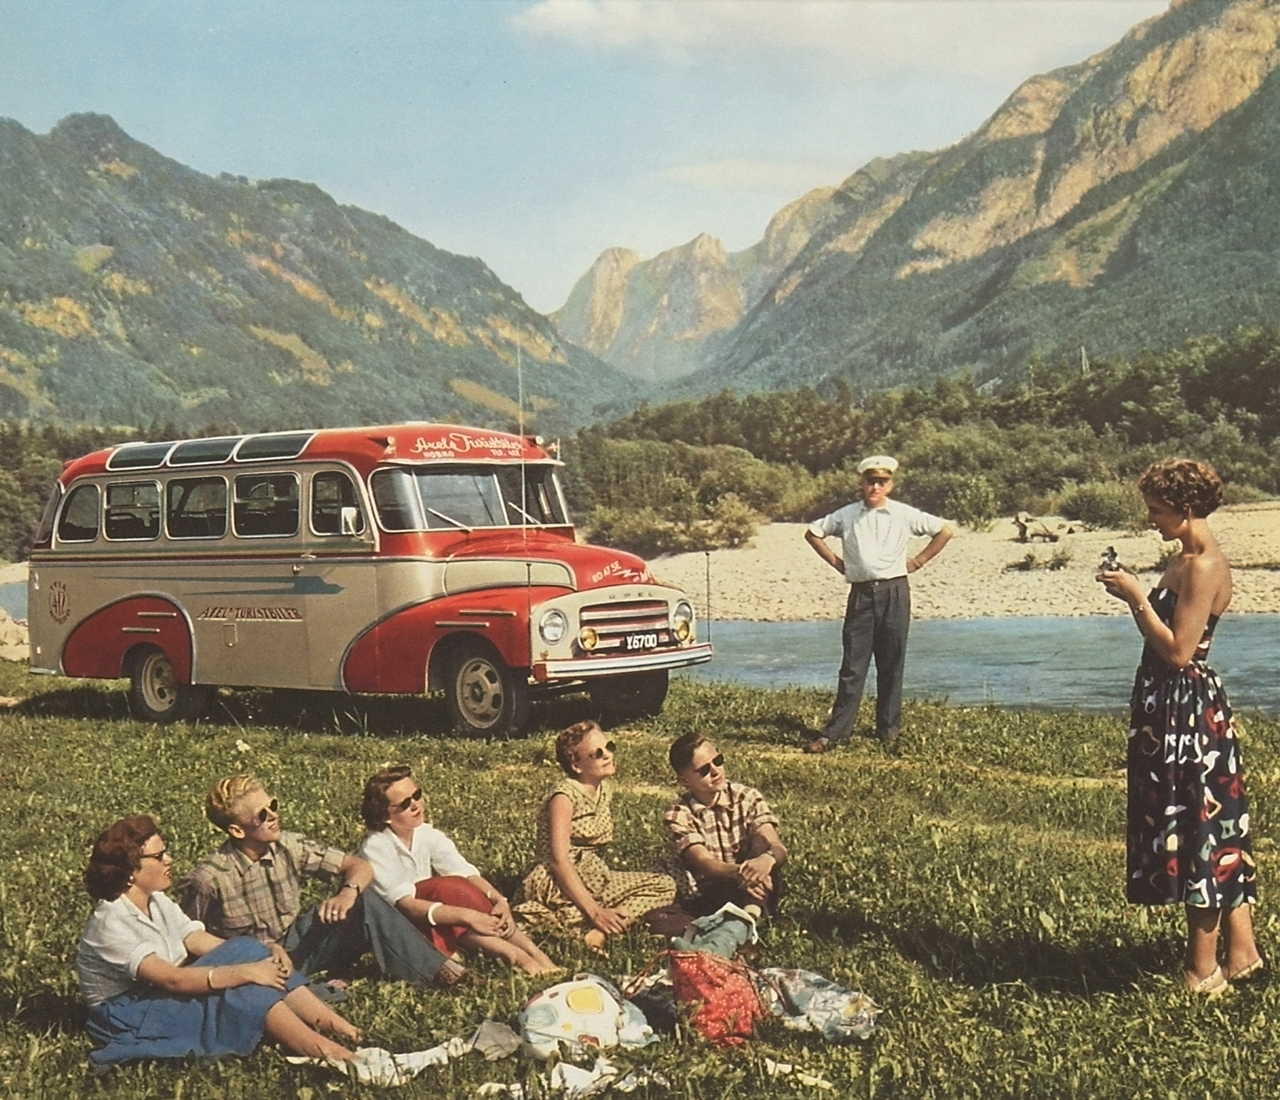 1950s Retro Picnic Pictures Photos And Images For Facebook Tumblr Pinterest And Twitter